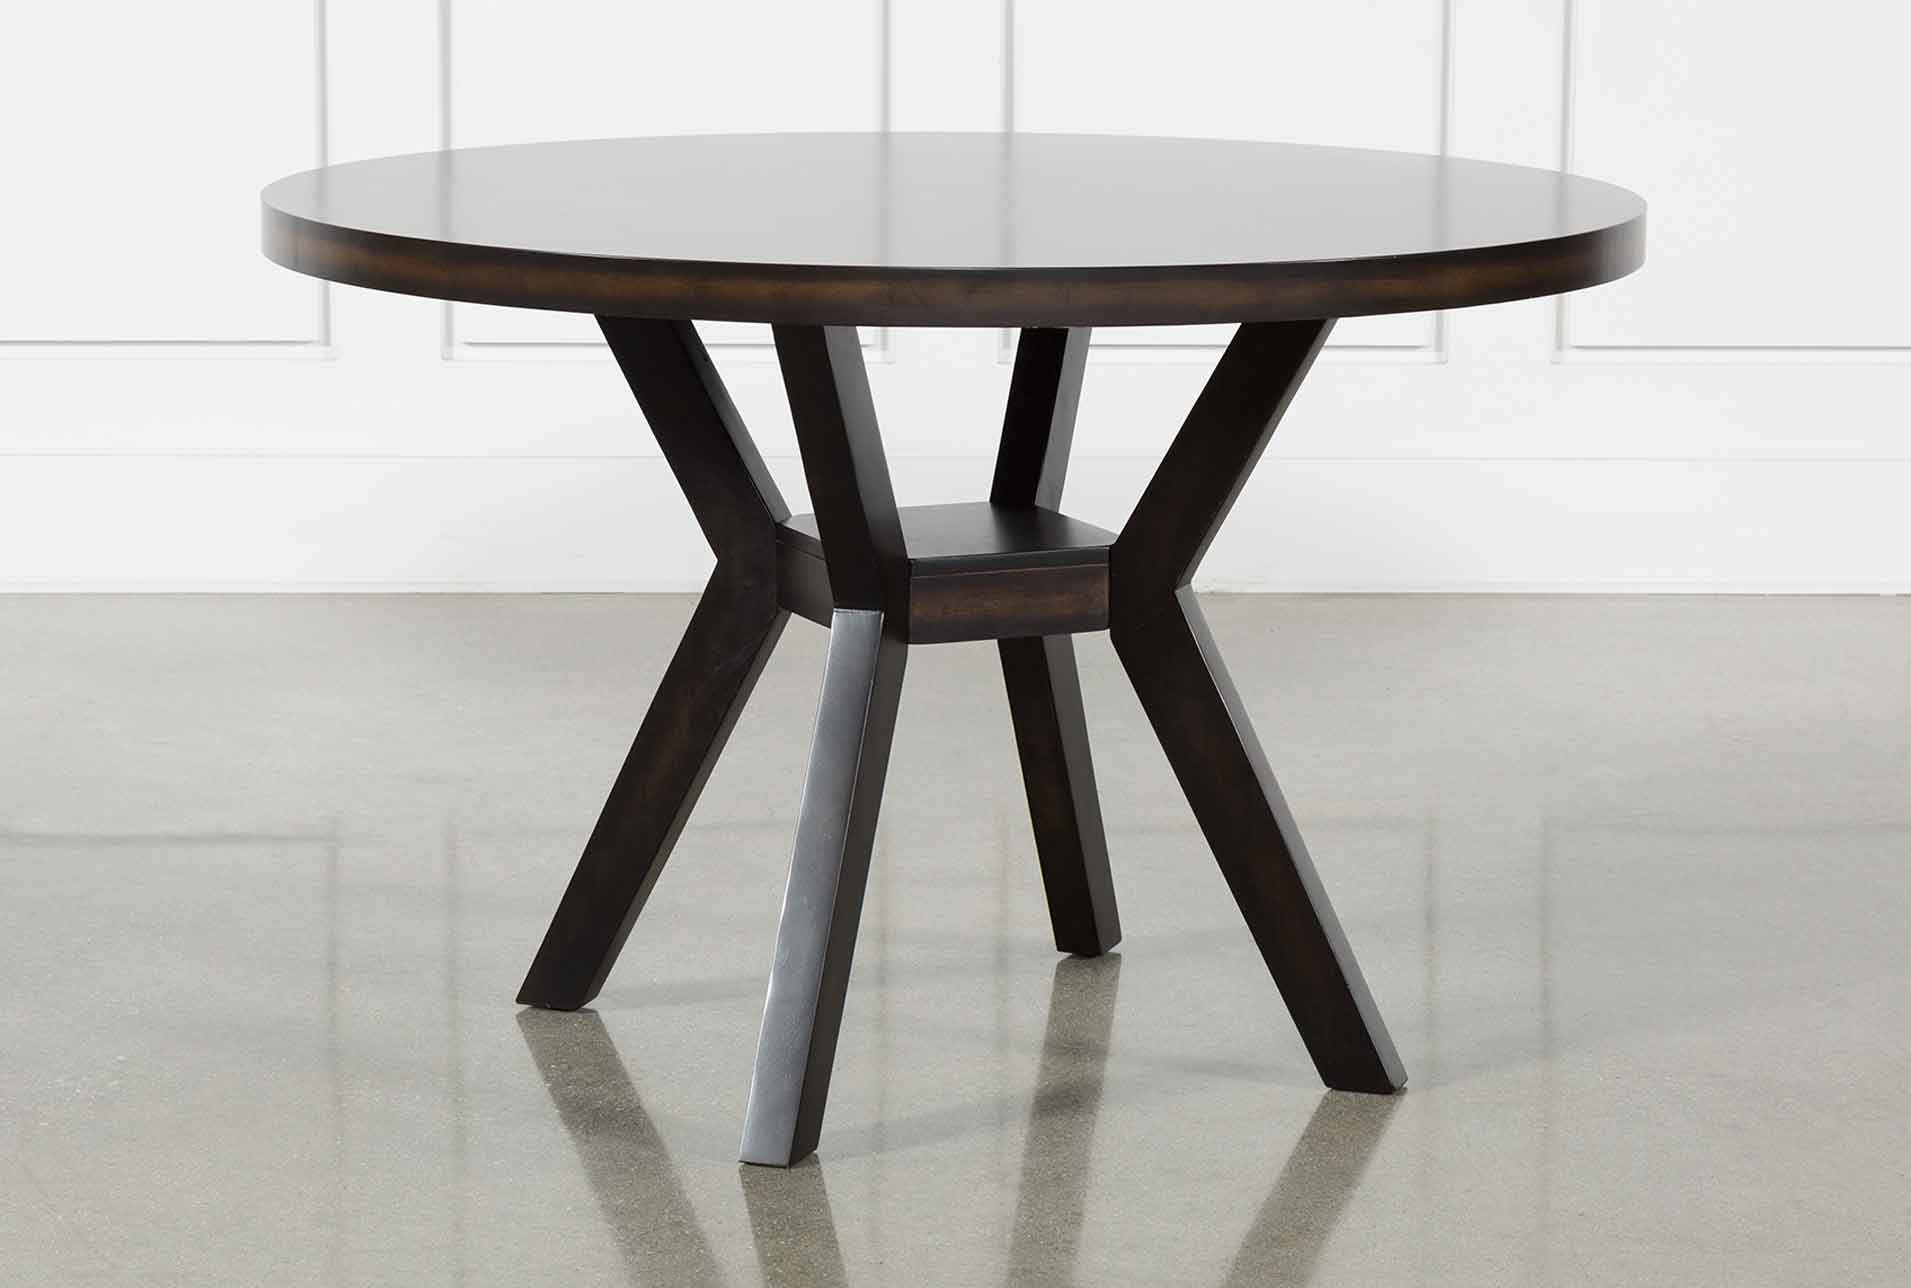 Macie Black Dining Table (Qty: 1) Has Been Successfully Added To Your Cart.